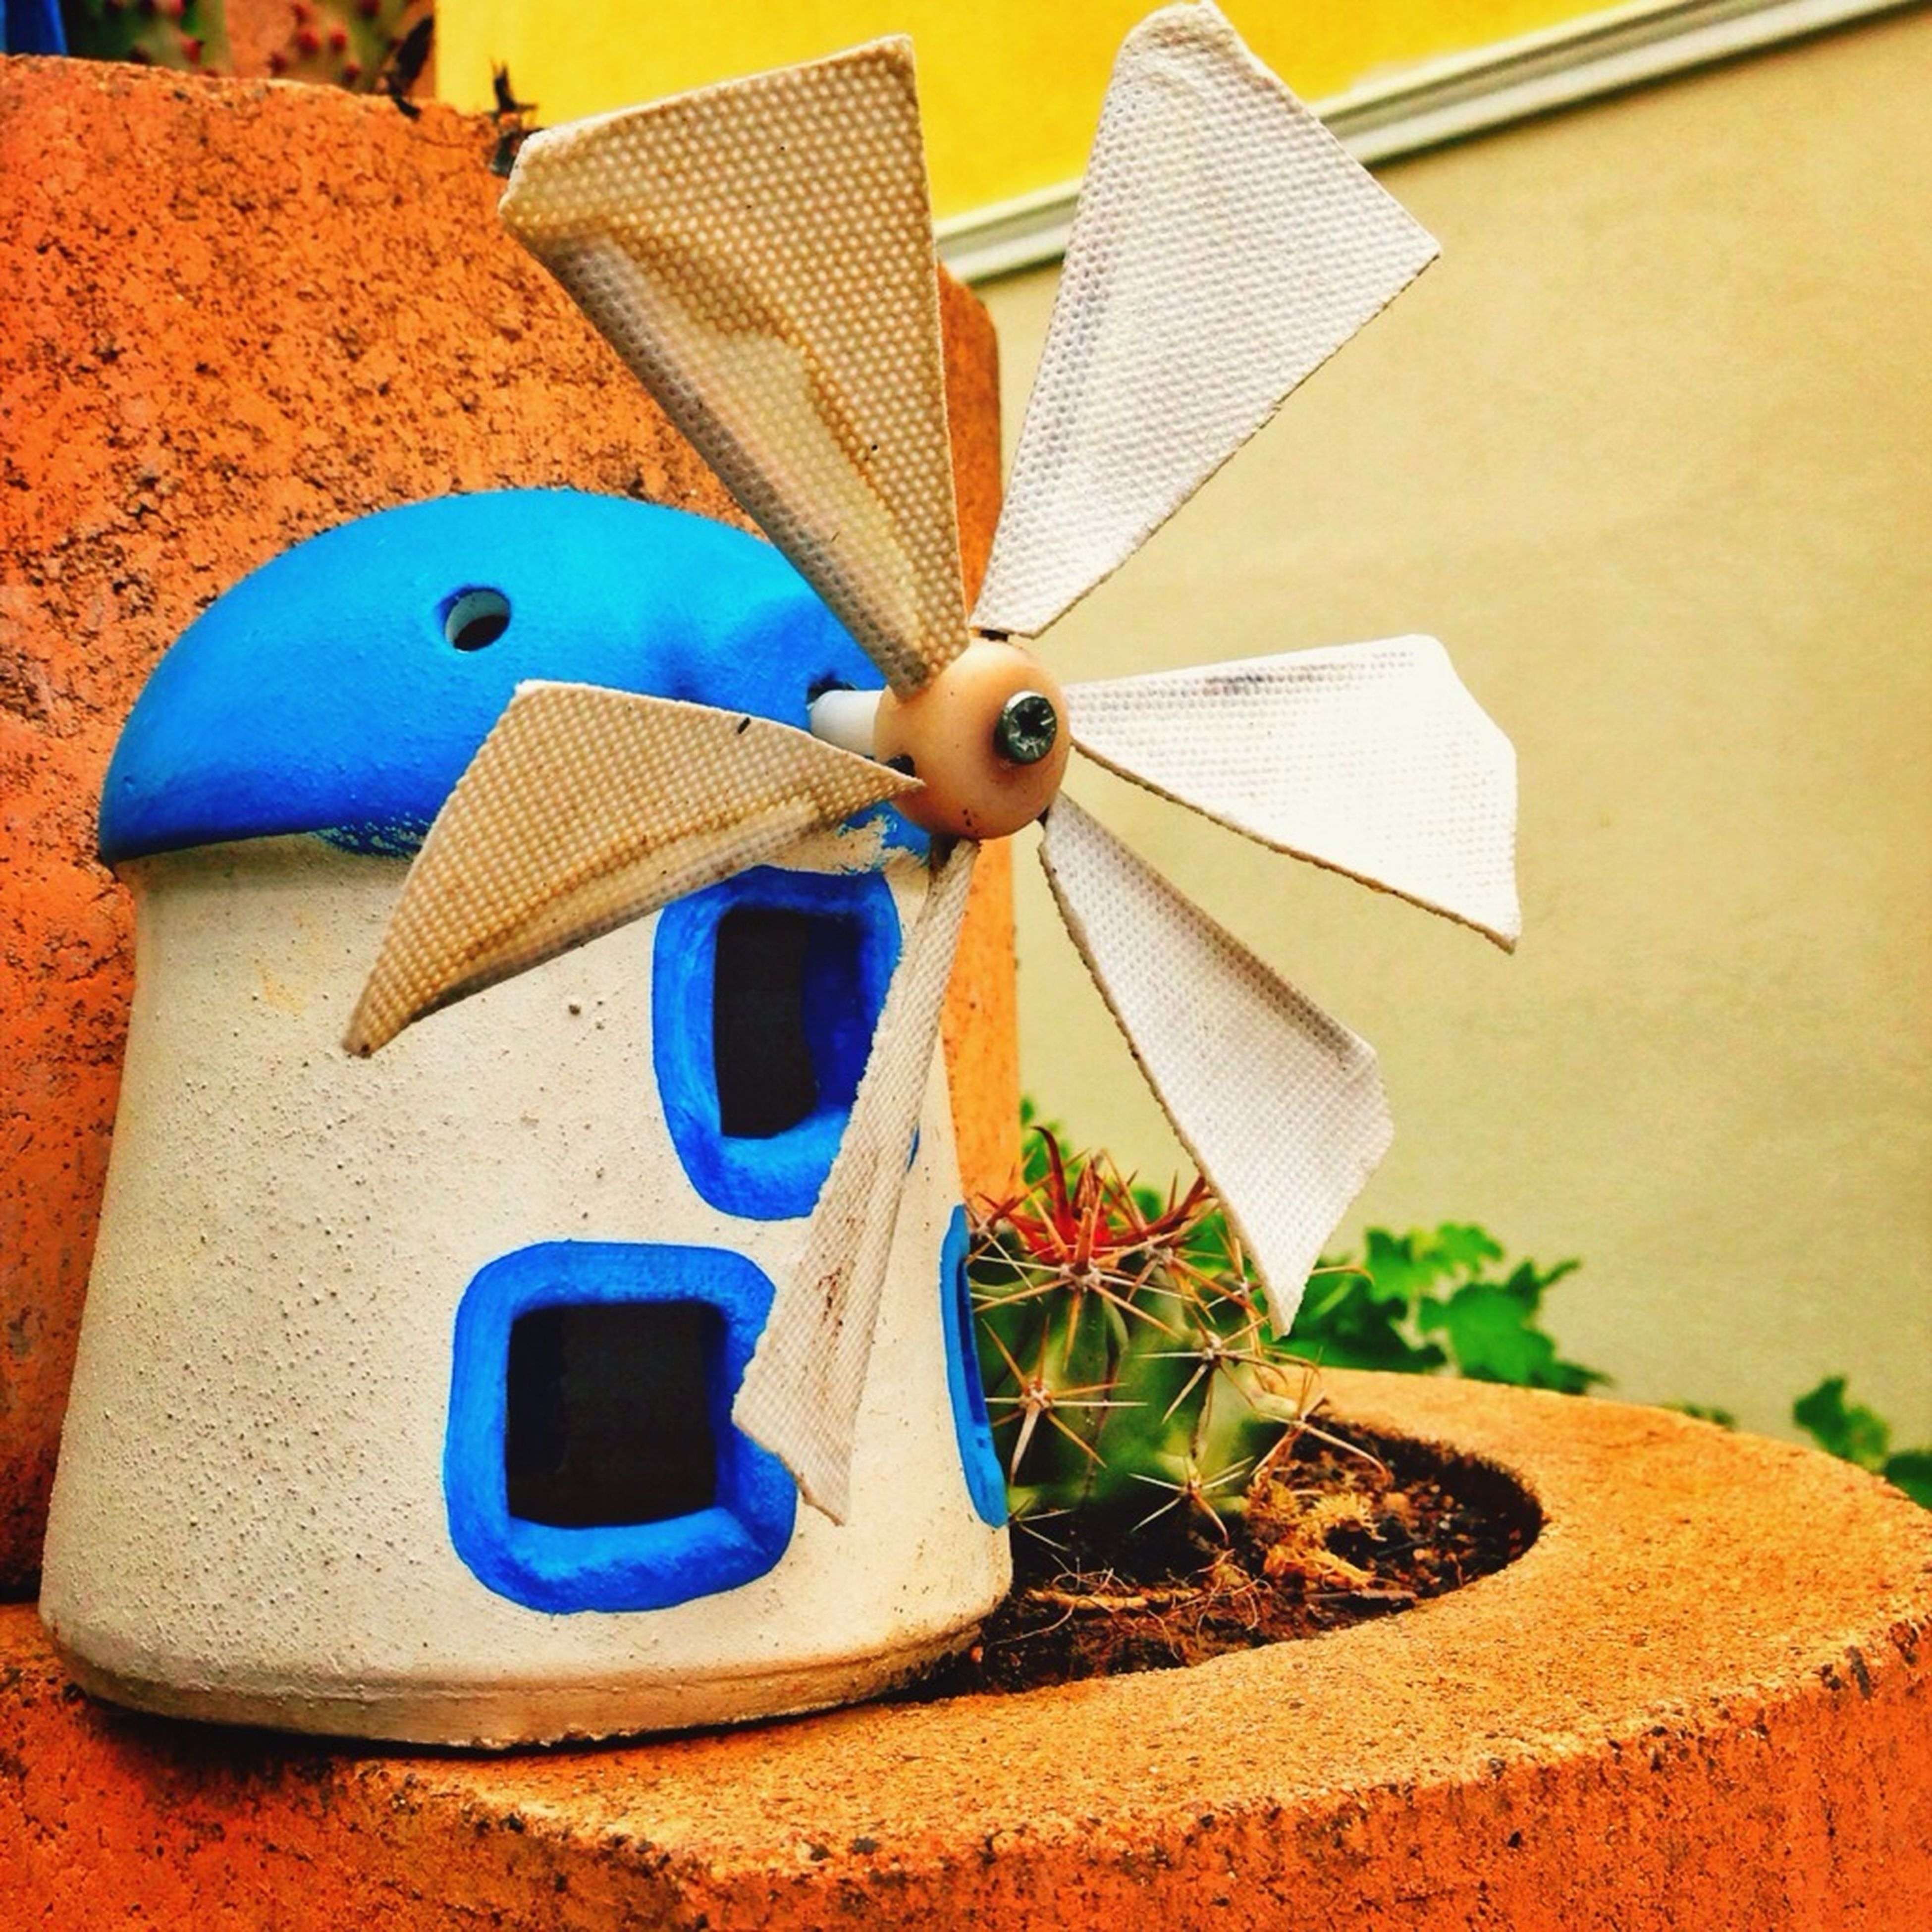 art and craft, art, animal representation, blue, creativity, multi colored, toy, close-up, outdoors, wall - building feature, no people, butterfly - insect, day, one animal, craft, built structure, animal wing, decoration, insect, architecture